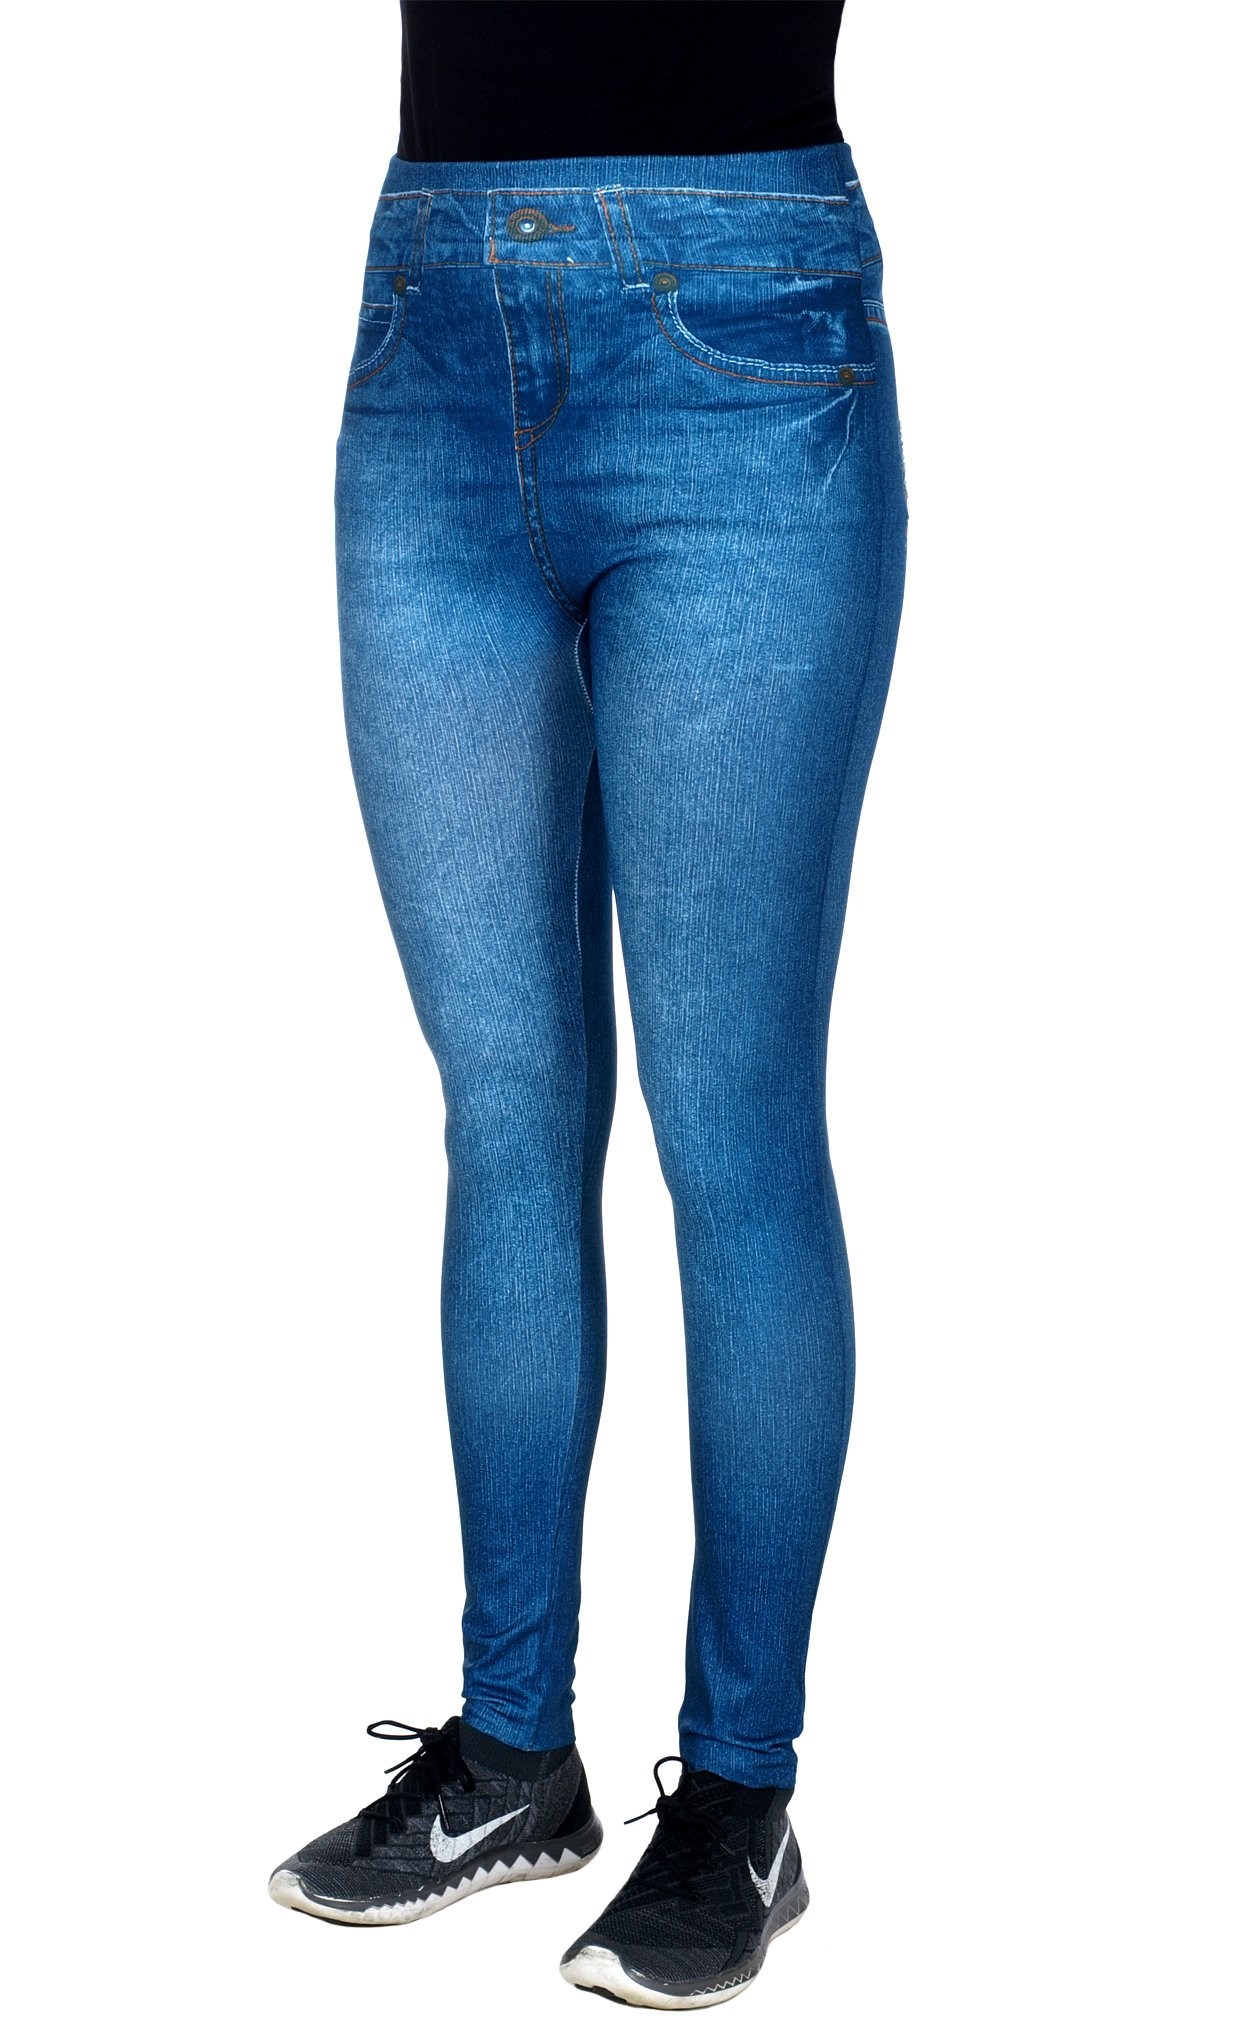 Crush Women's Blue Jean Denim Look Jeggings with Rhinestone Accents by (1X/2X, Blue)